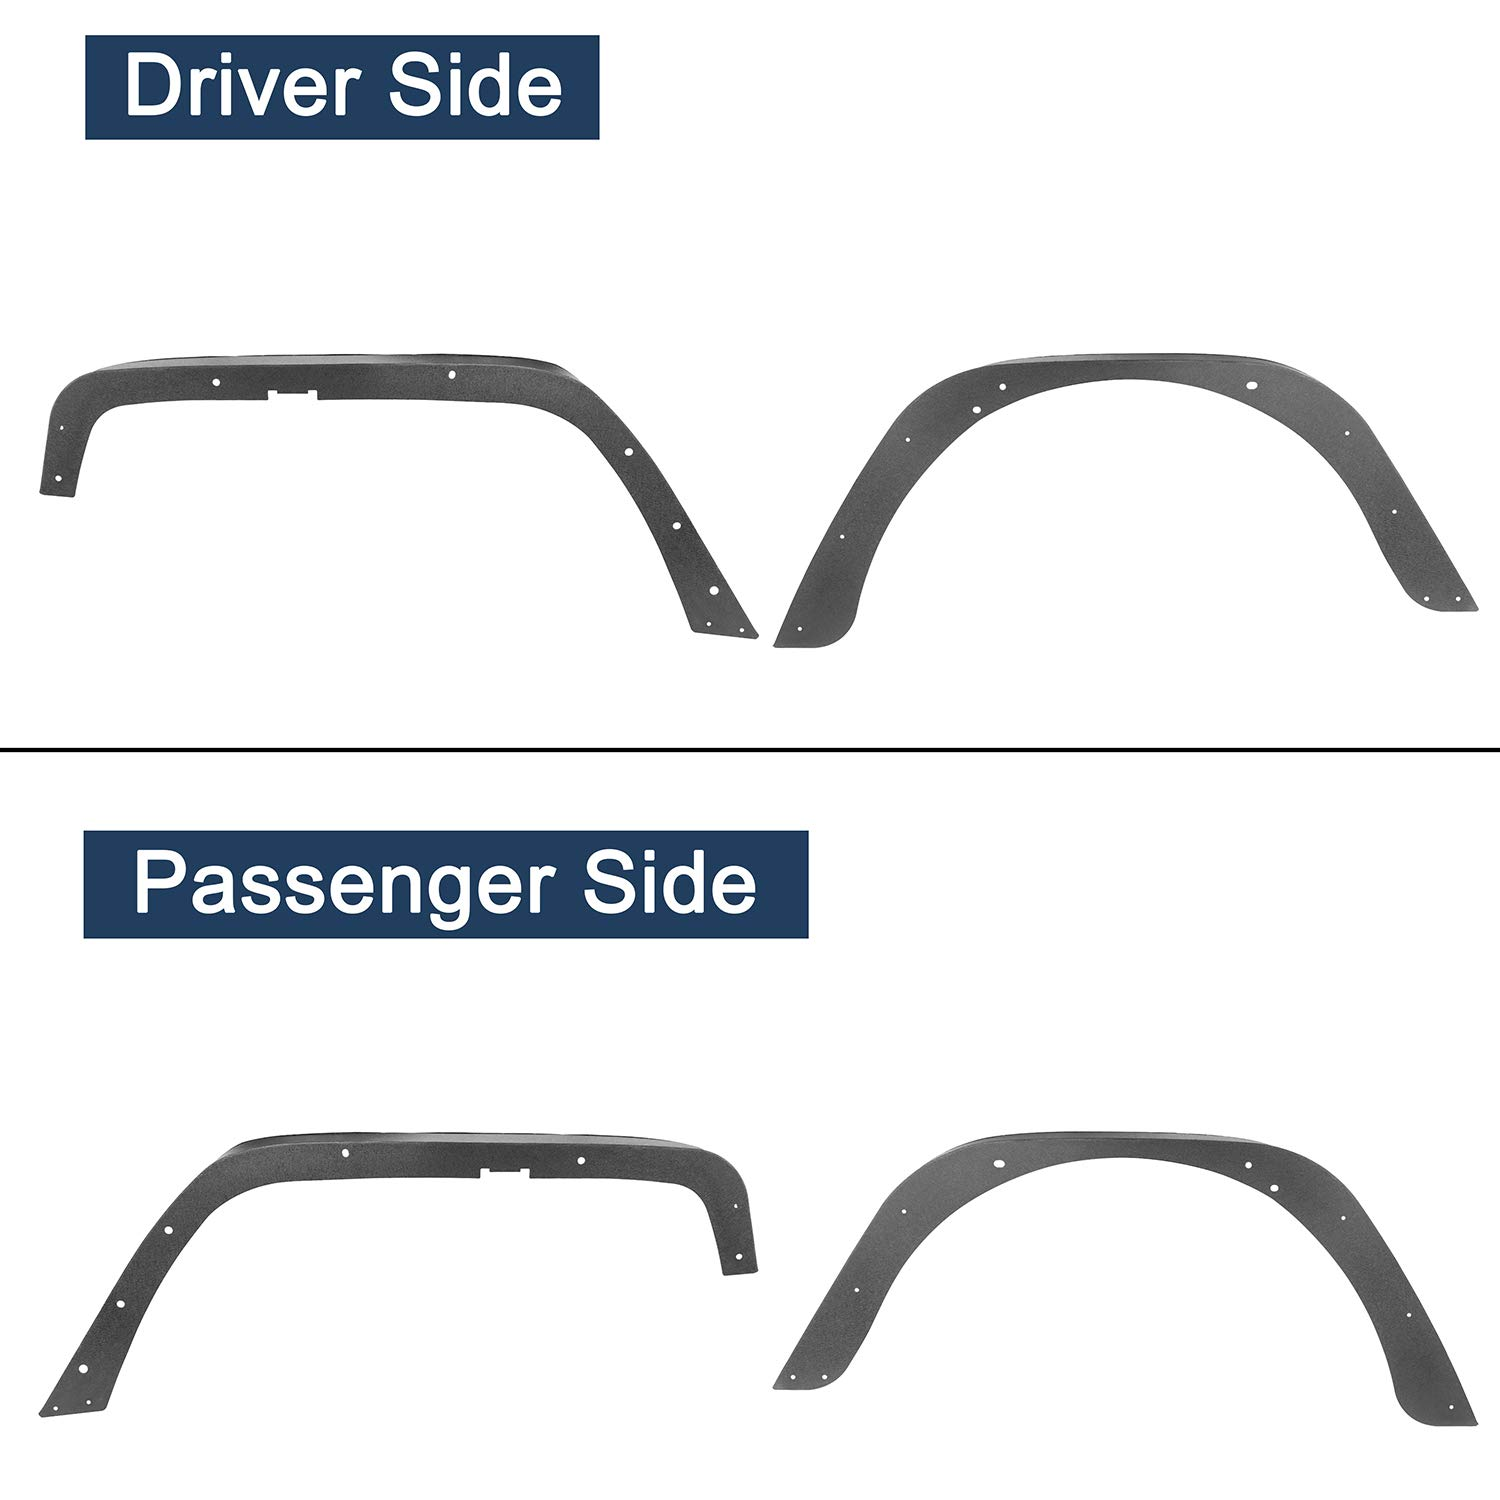 Set Off Road Steel Flat Front /& Rear Fender Flares Guard for 1997-2006 Jeep Wrangler TJ Wrangler Unlimited